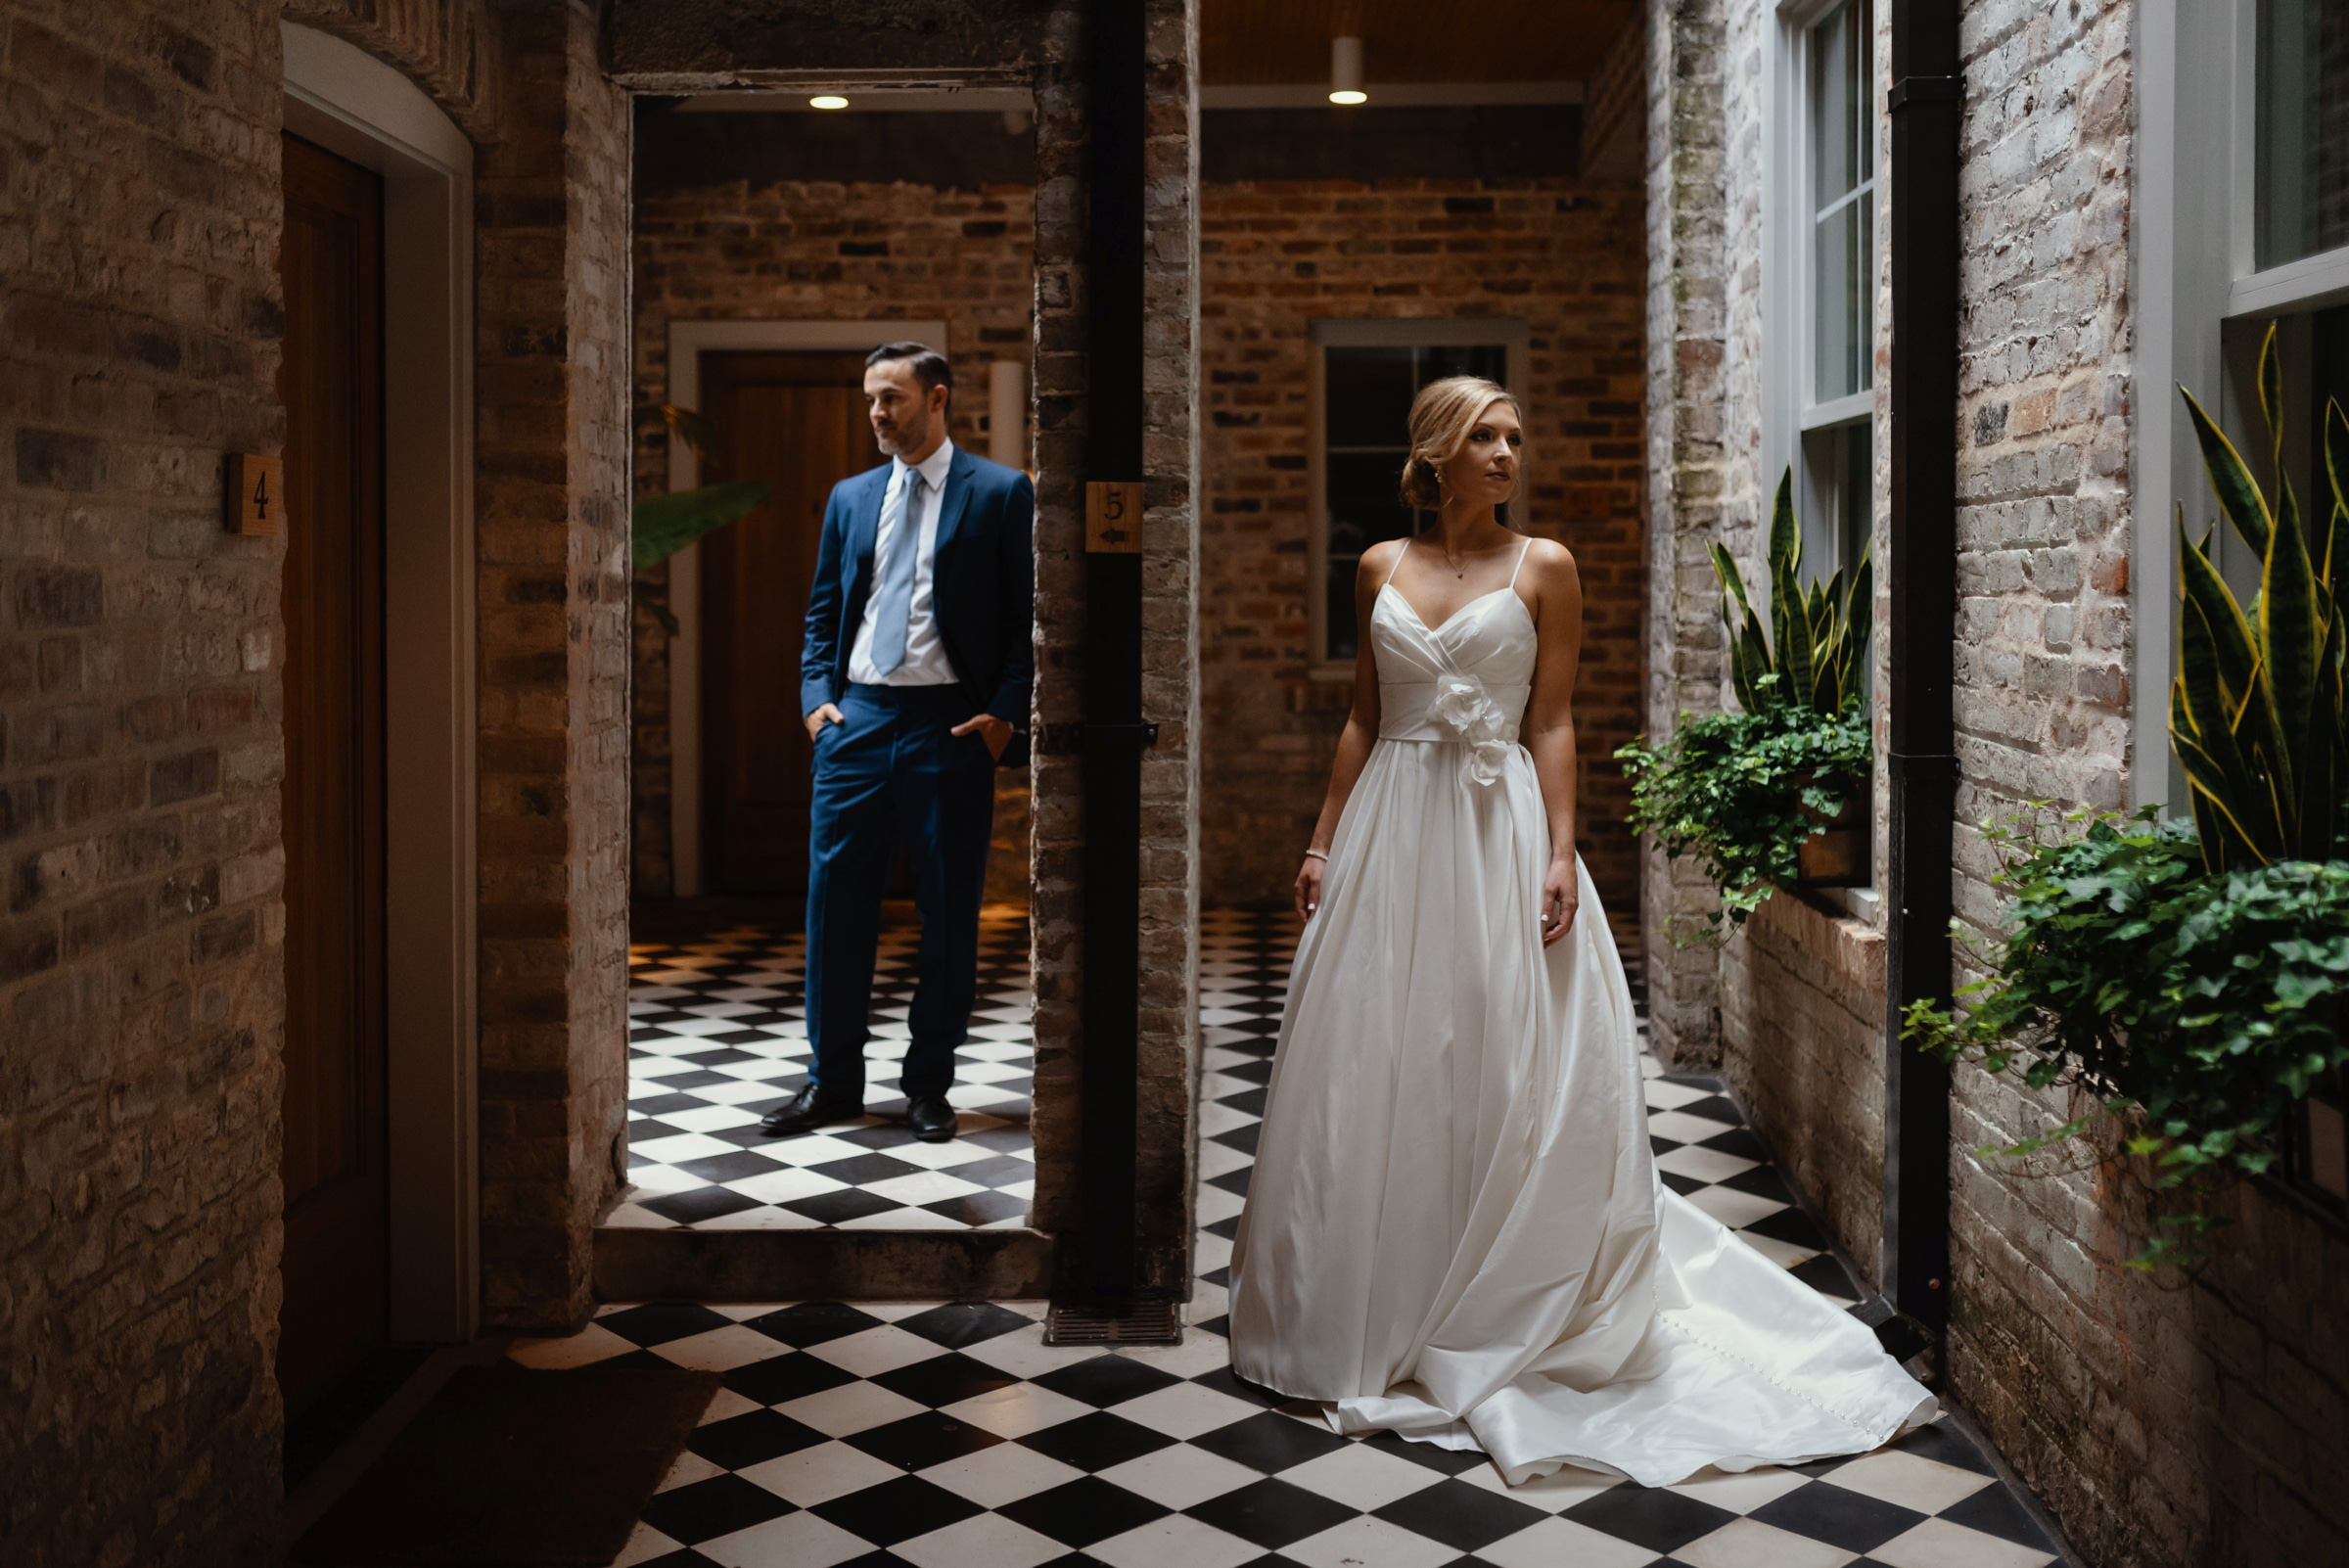 bride and groom formal portrait in the doorways-new orleans-austin-houston-wedding photographer- photo by Dark Roux